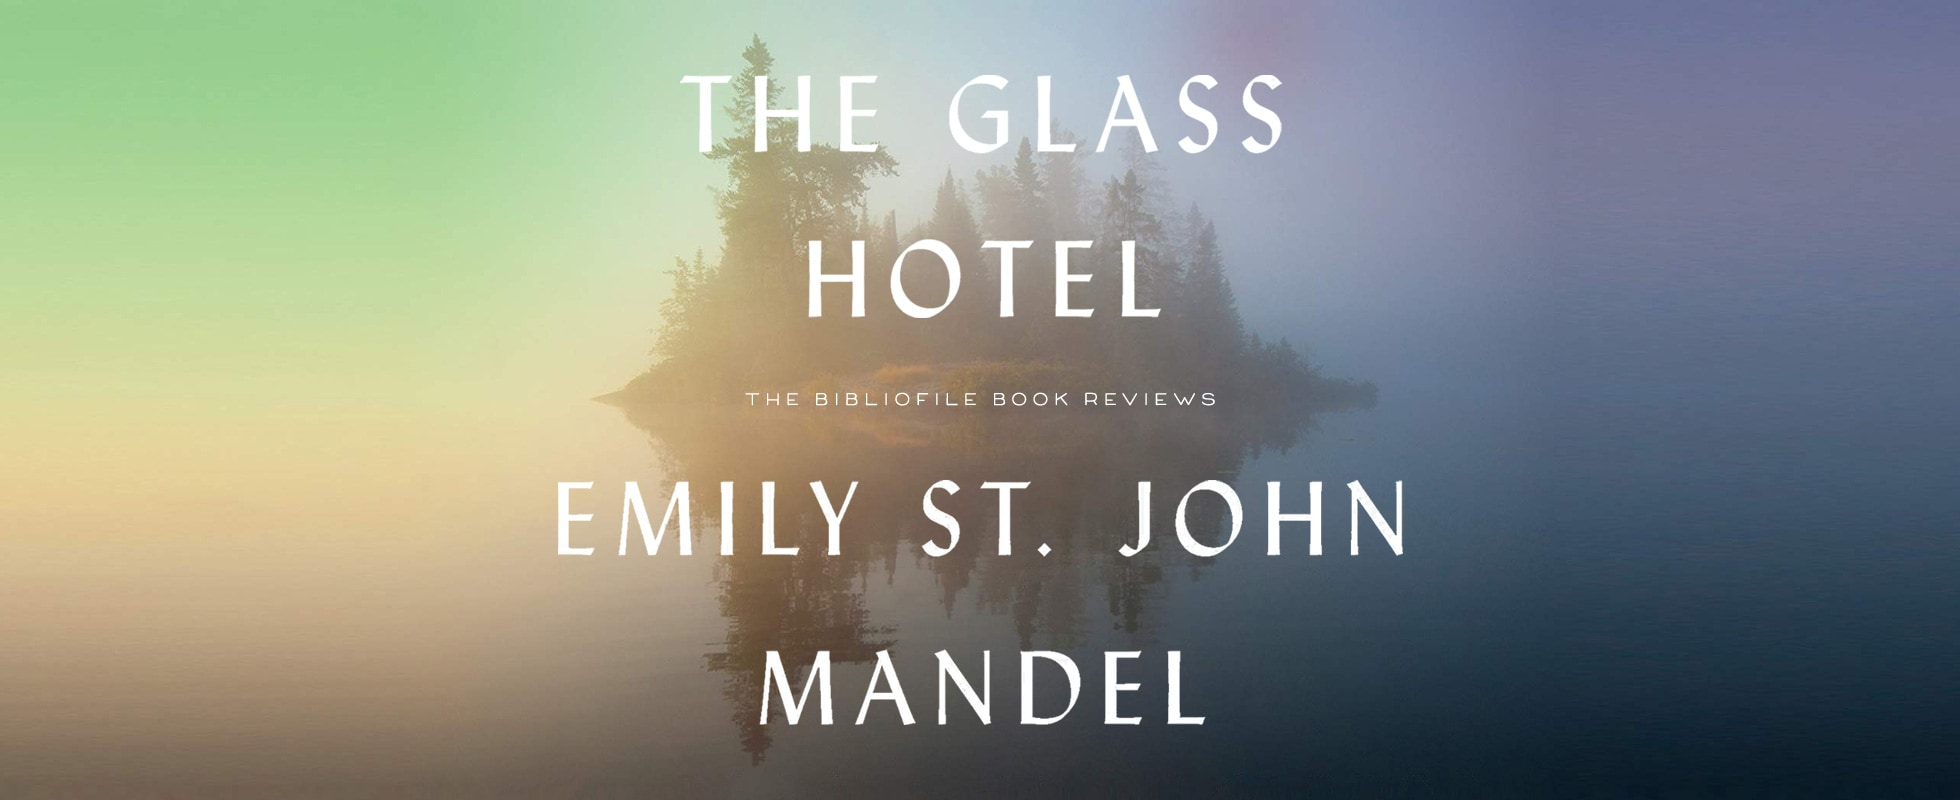 The Glass Hotel Emil St John Mandel book review summary plot synopsis